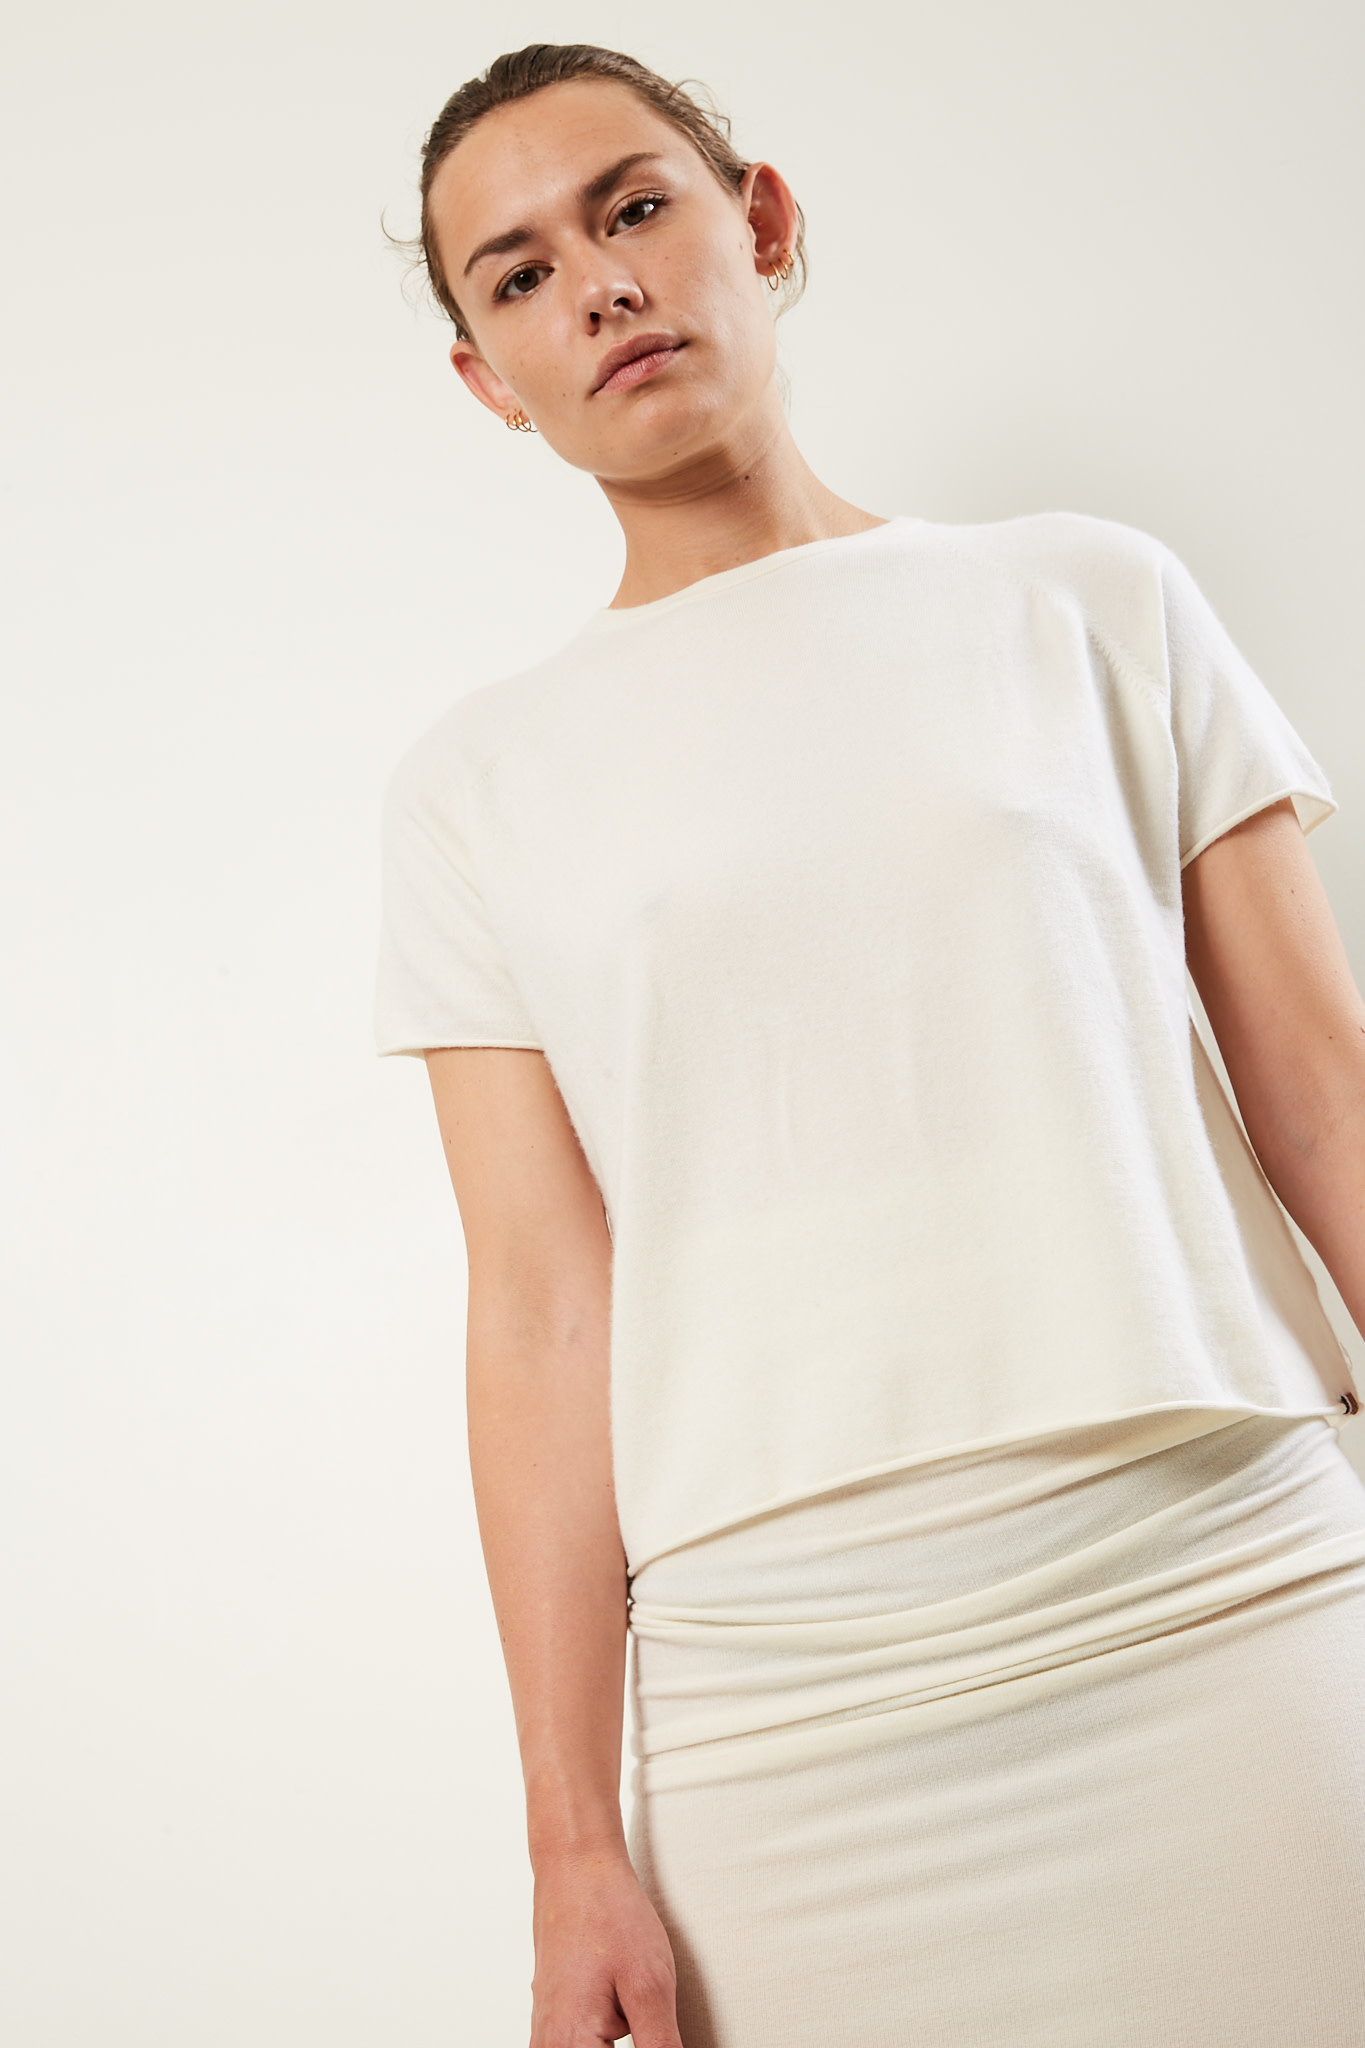 extreme cashmere - Todd cropped t-shirt